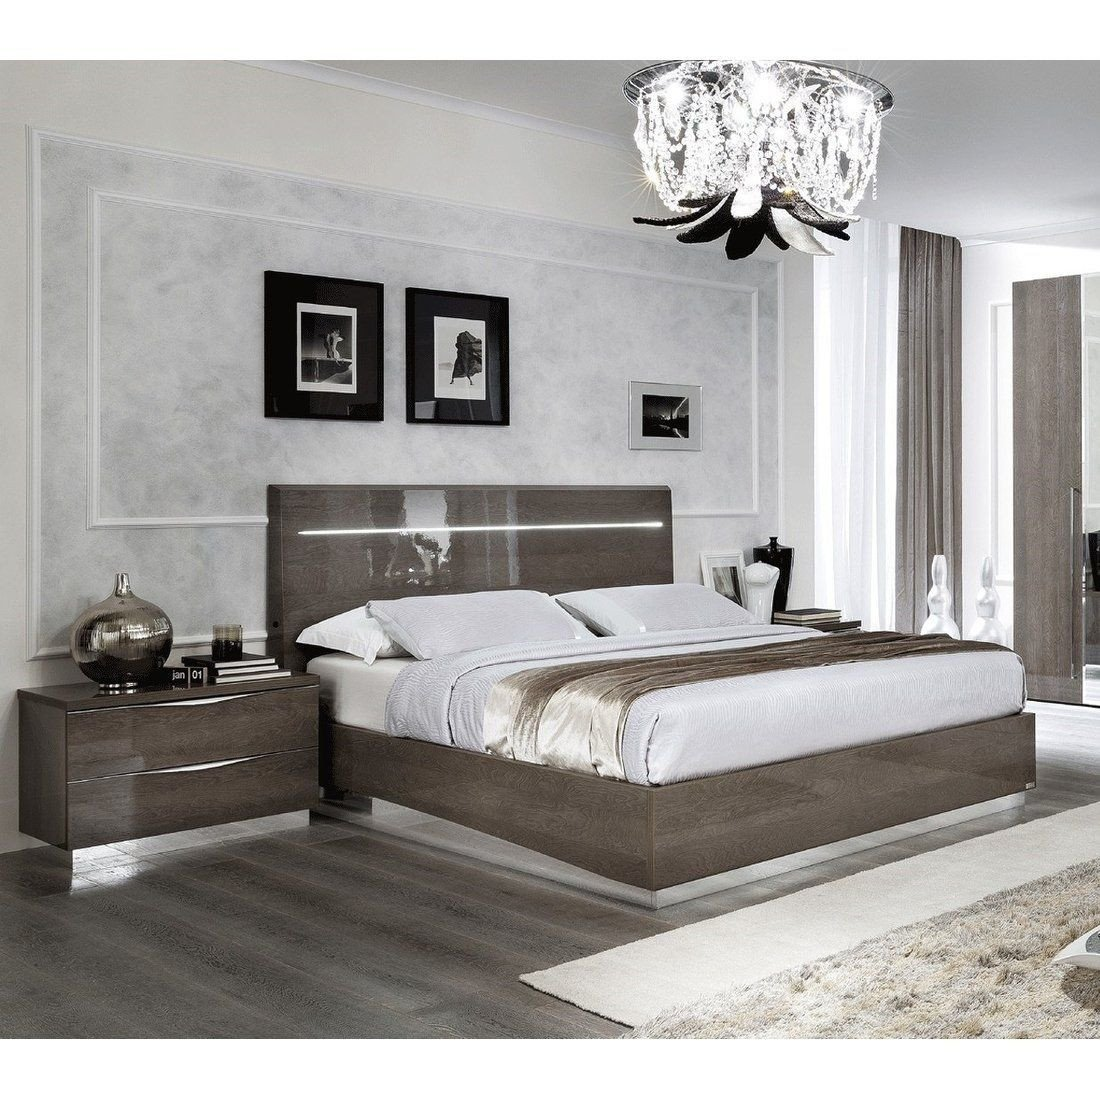 White Lacquer Bedroom Set Unique Luca Home Led Silver Birch Queen Bed Brown